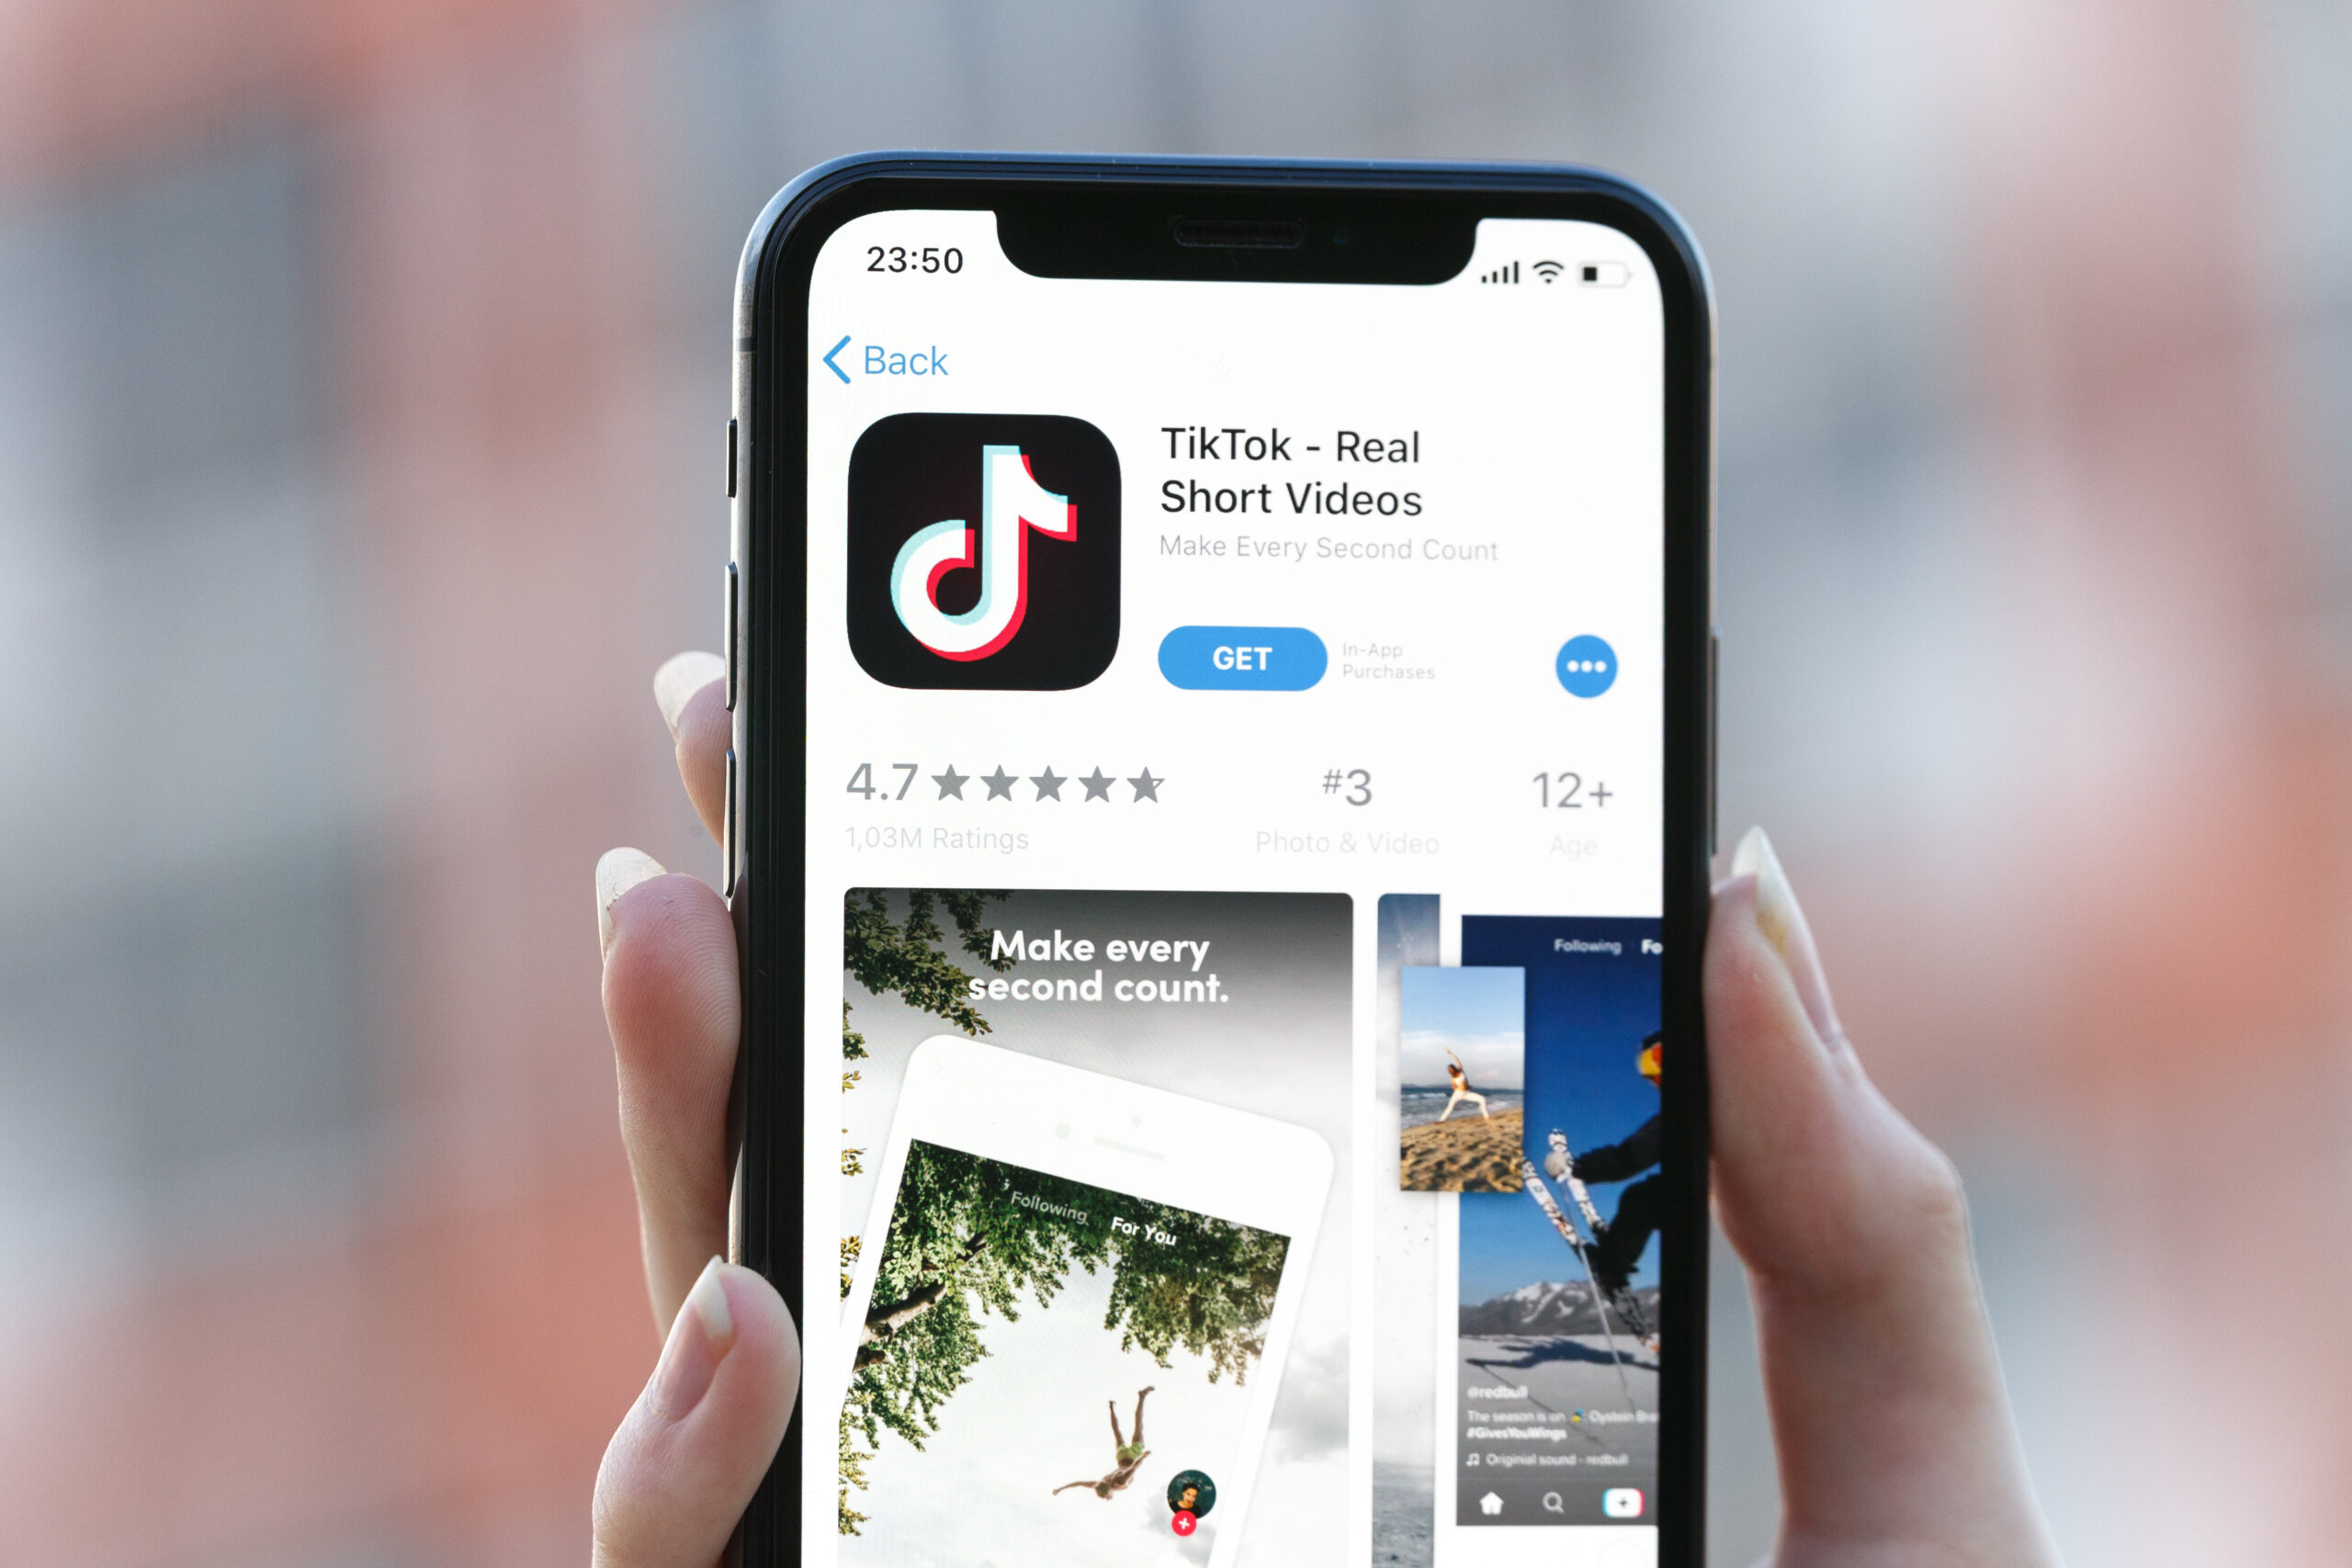 Person holds mobile phone showing Tik Tok homepage